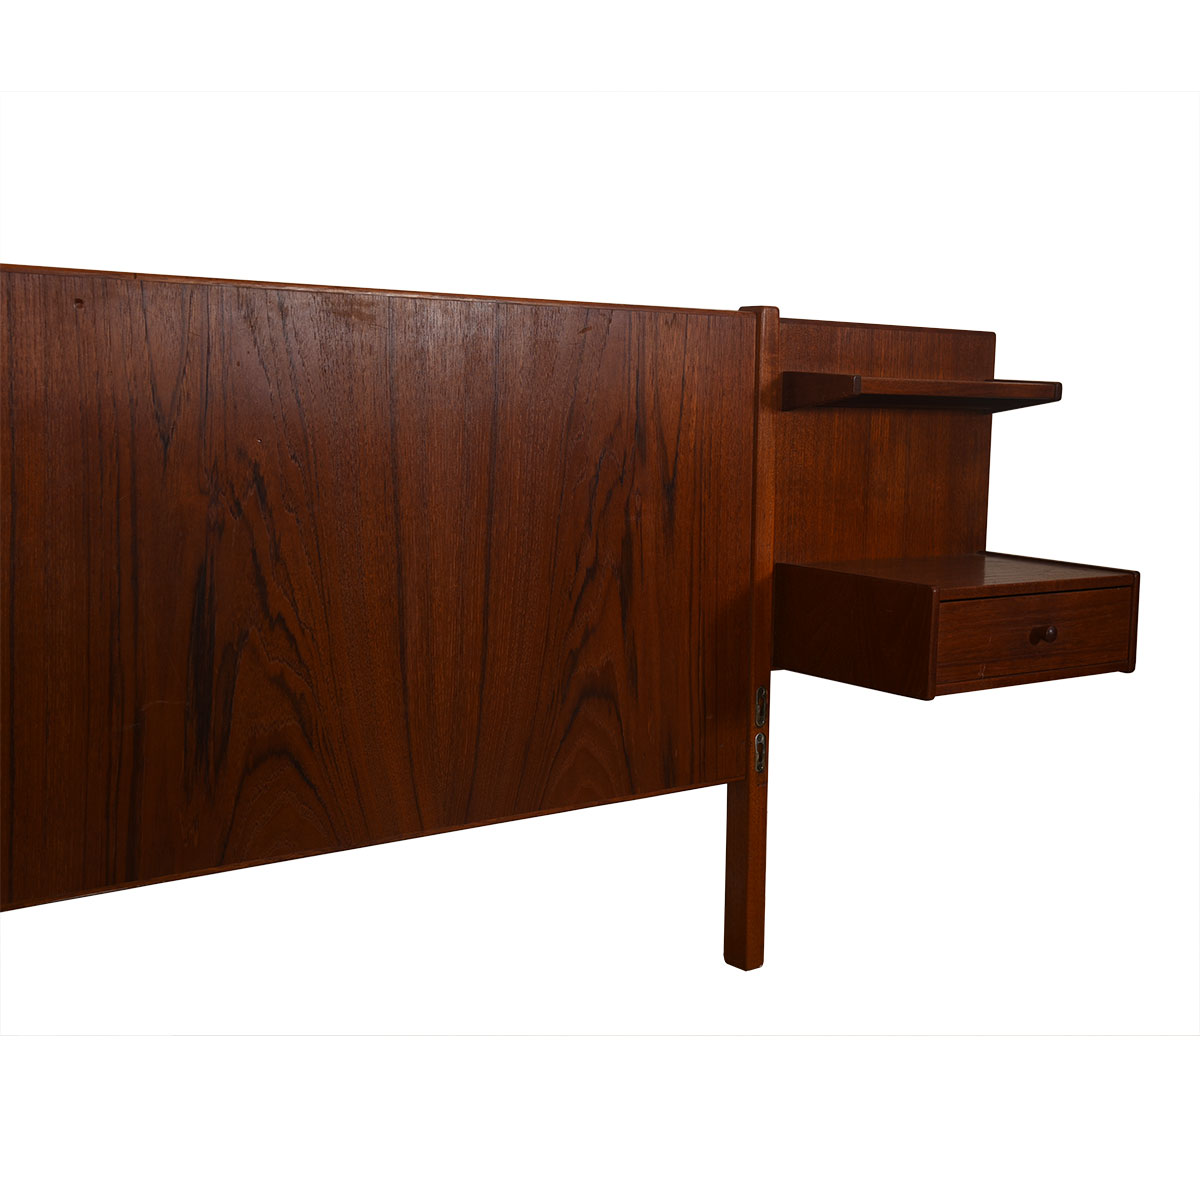 Danish Queen-Sized Teak Headboard w/ Attached Nightstands & Black Footboard